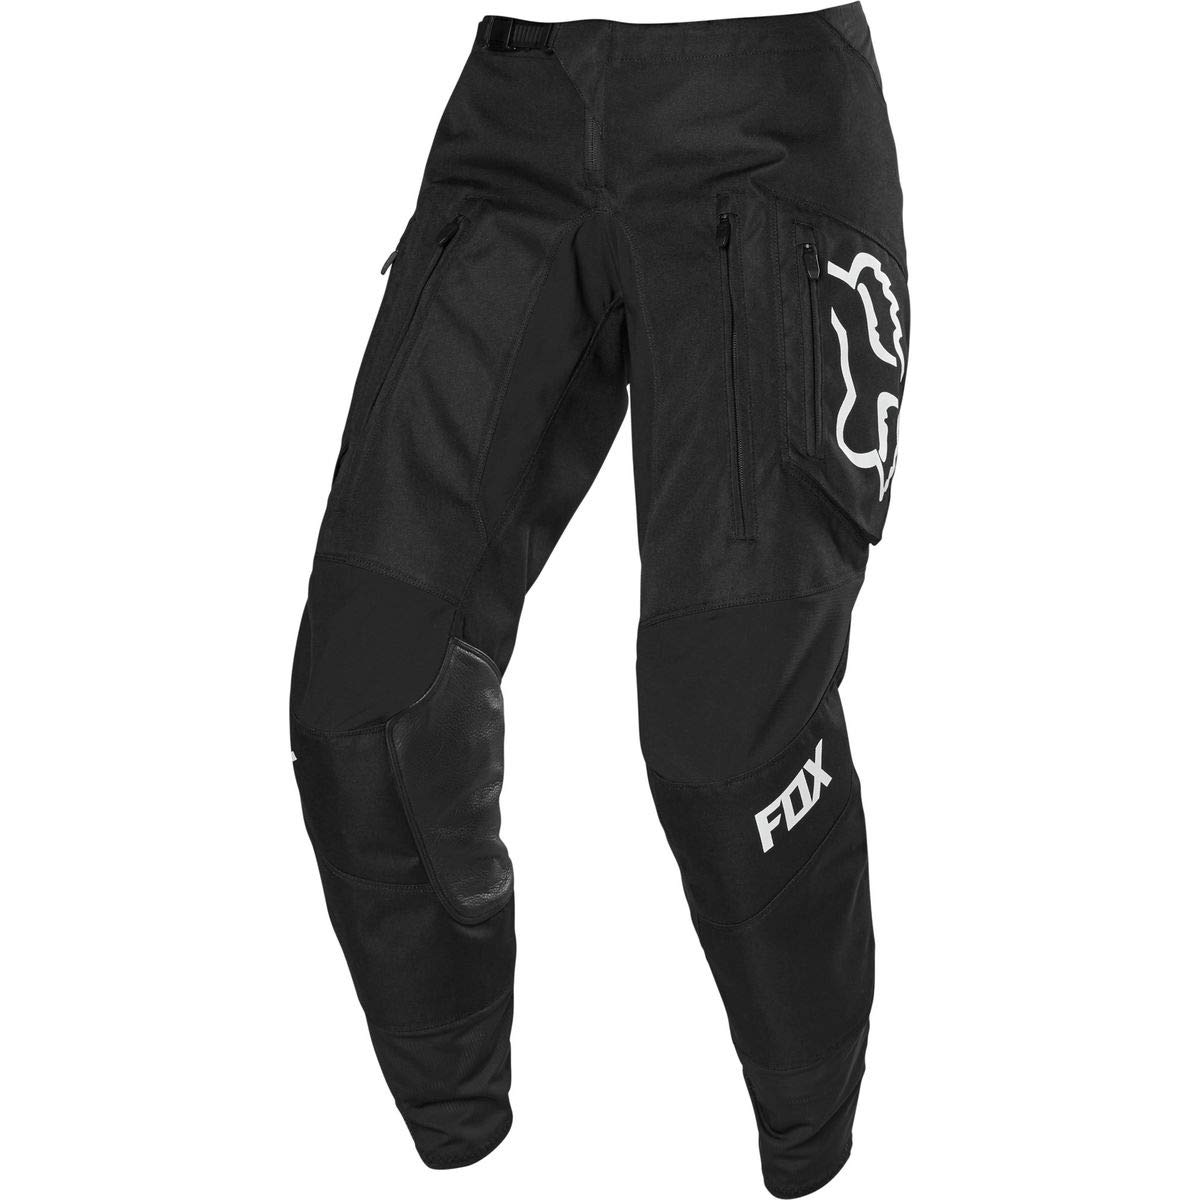 14 Fox Racing Legion Lt Womens Off-Road Motorcycle Pants Black//White